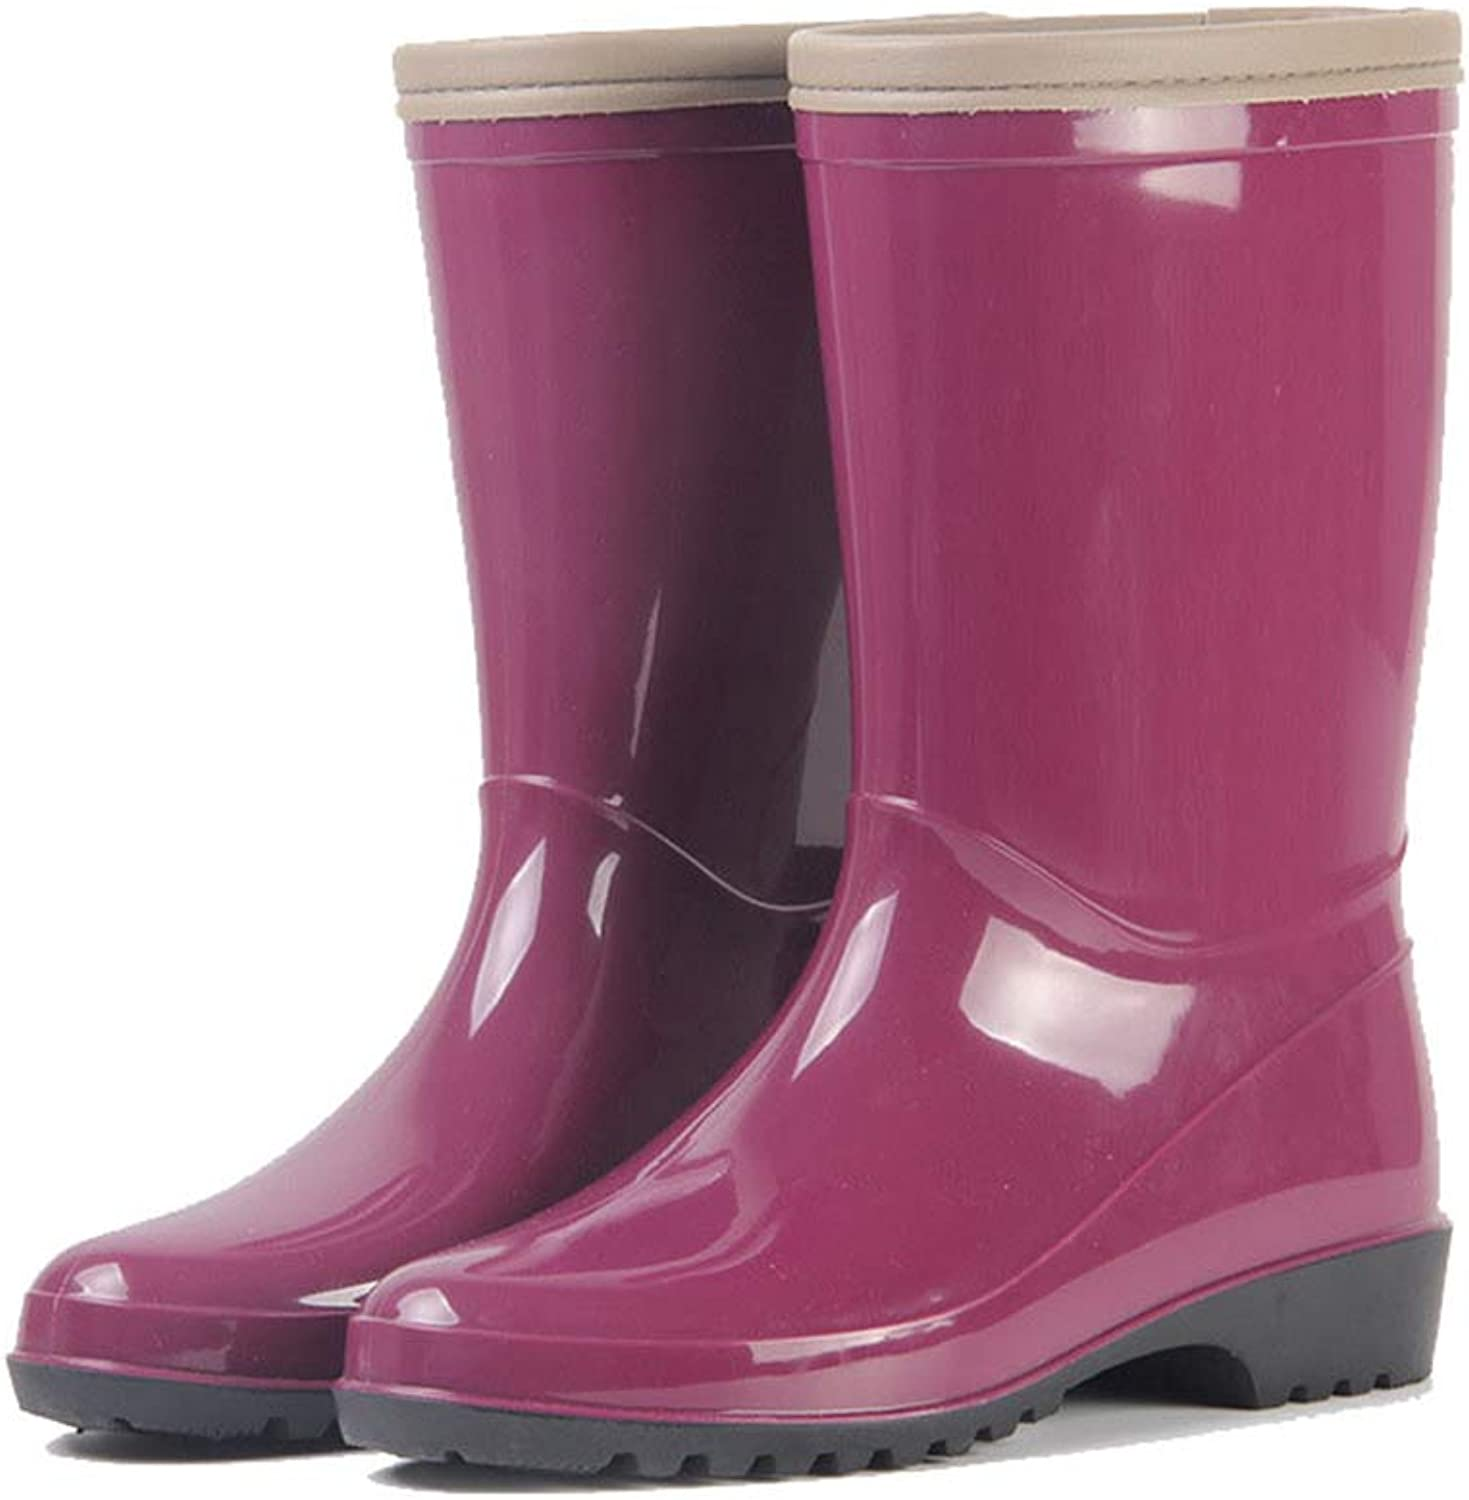 Women's Knee-high Jelly Rain Boots 2 Colour